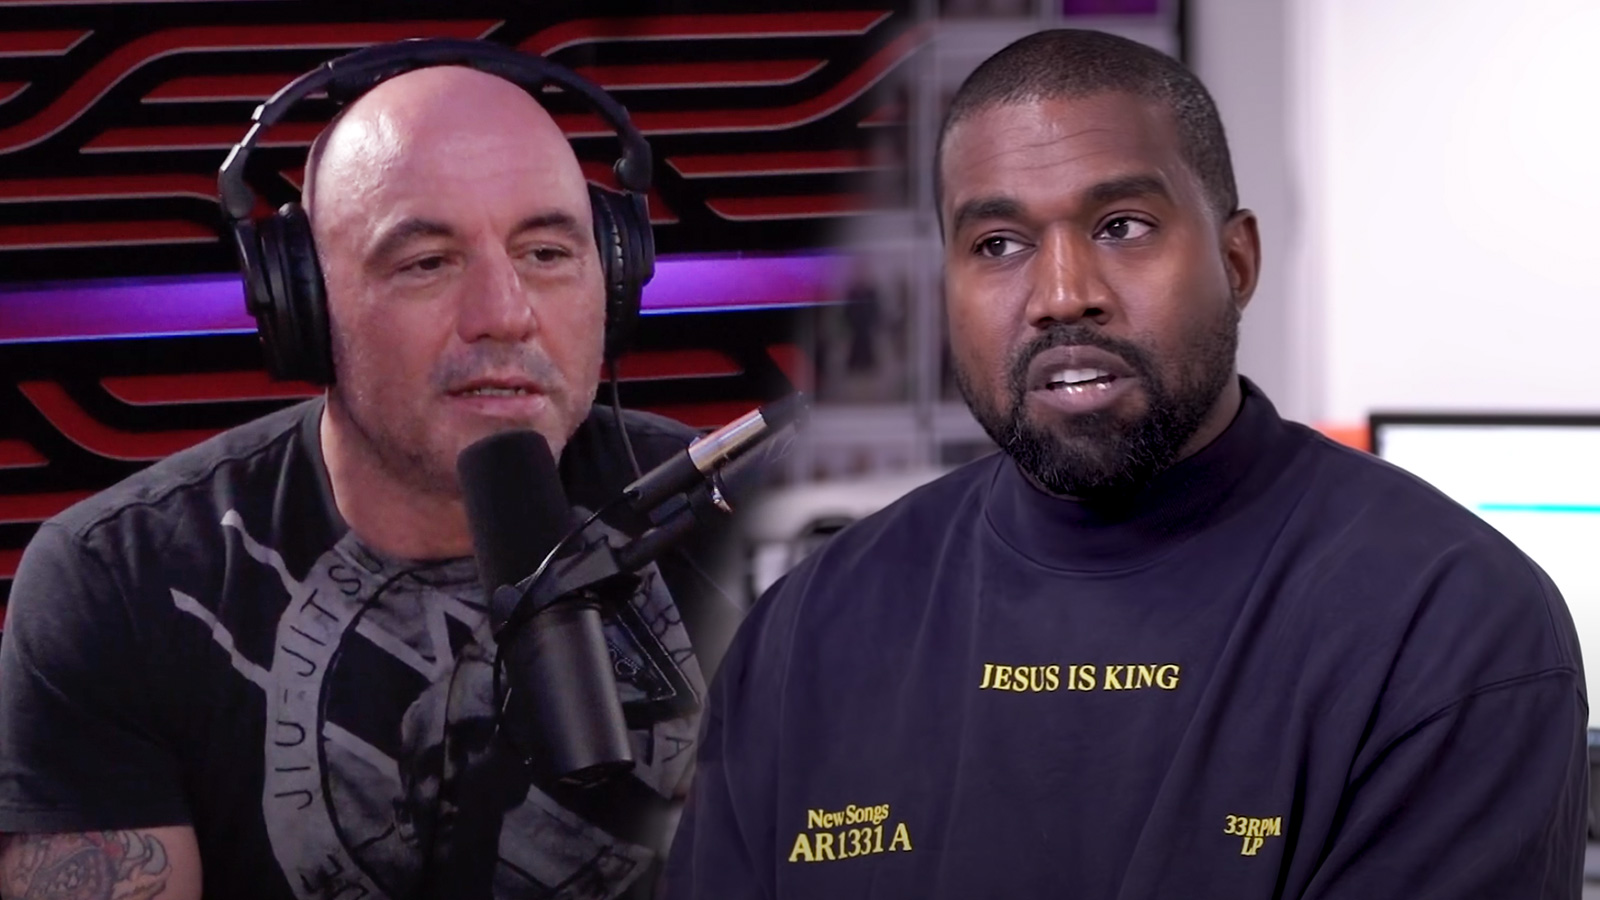 Joe Rogan is shown next to a photo of Kanye West.